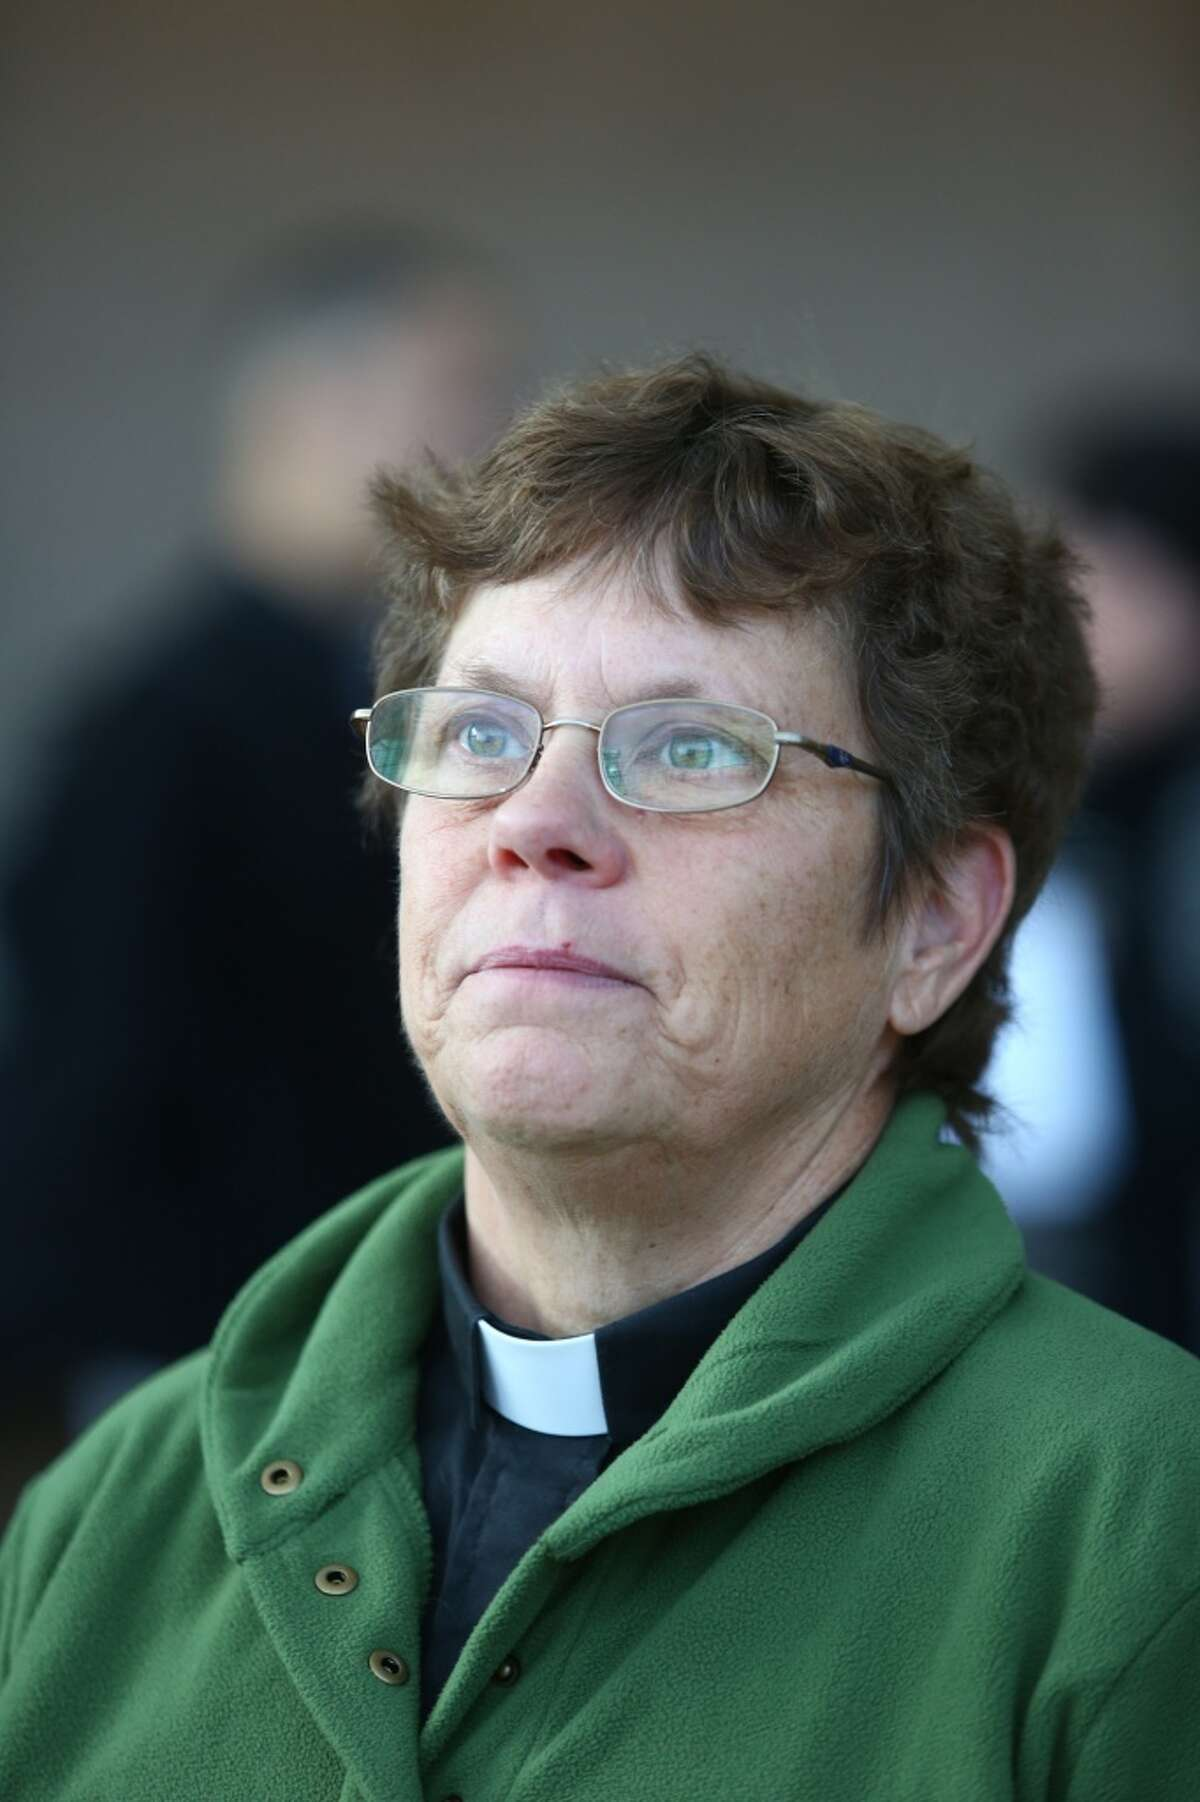 Rev. Jan Bolerjack of Riverton United Methodist Church in Tukwila joined supporters of SeaTac's Proposition 1, who gathered to declare victory on Tuesday, November 26, 2013 at Sea-Tac International Airport. The voter initiative will raise the minimum wage to $15 per hour.